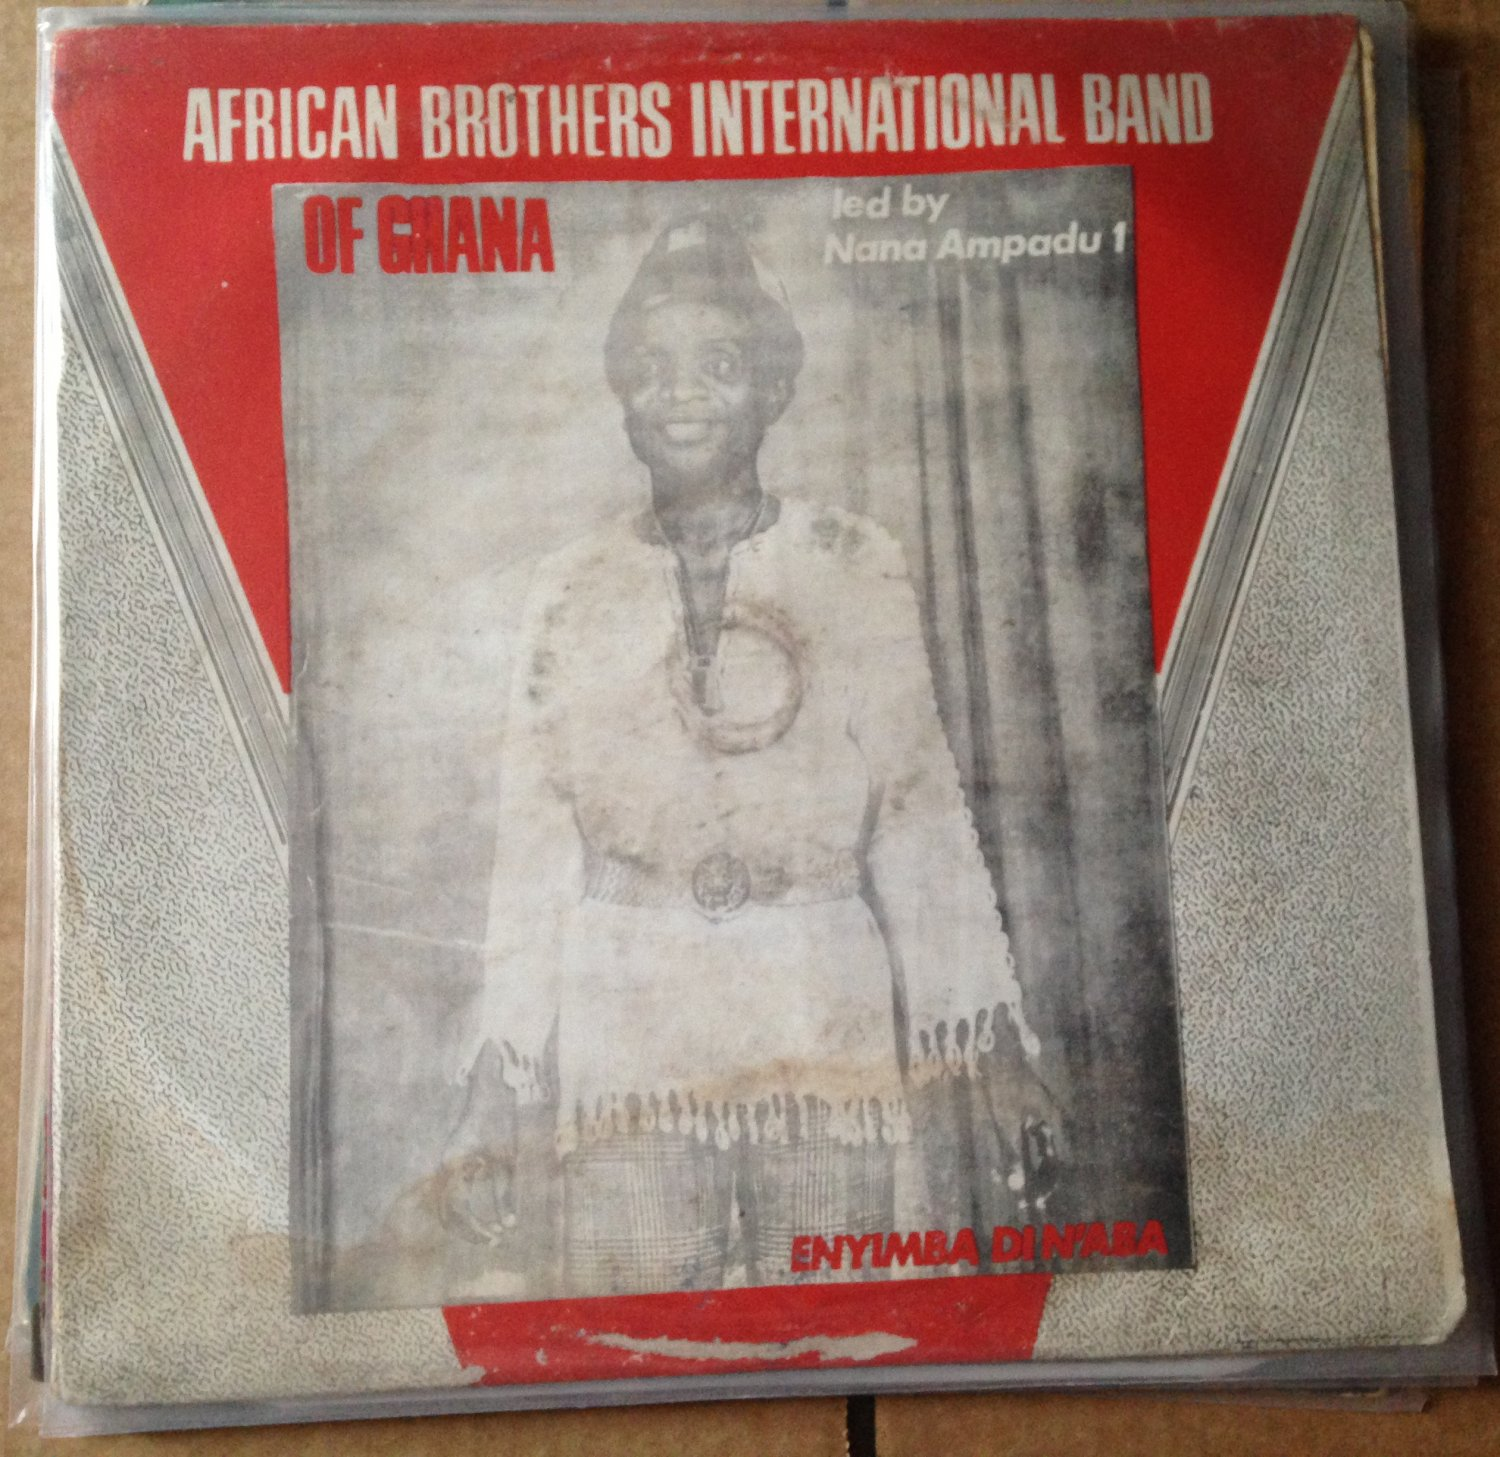 AFRICAN BROTHERS INTERNATIONAL BAND LP enyimba din'aba GHANA HIGHLIFE mp3 LISTEN